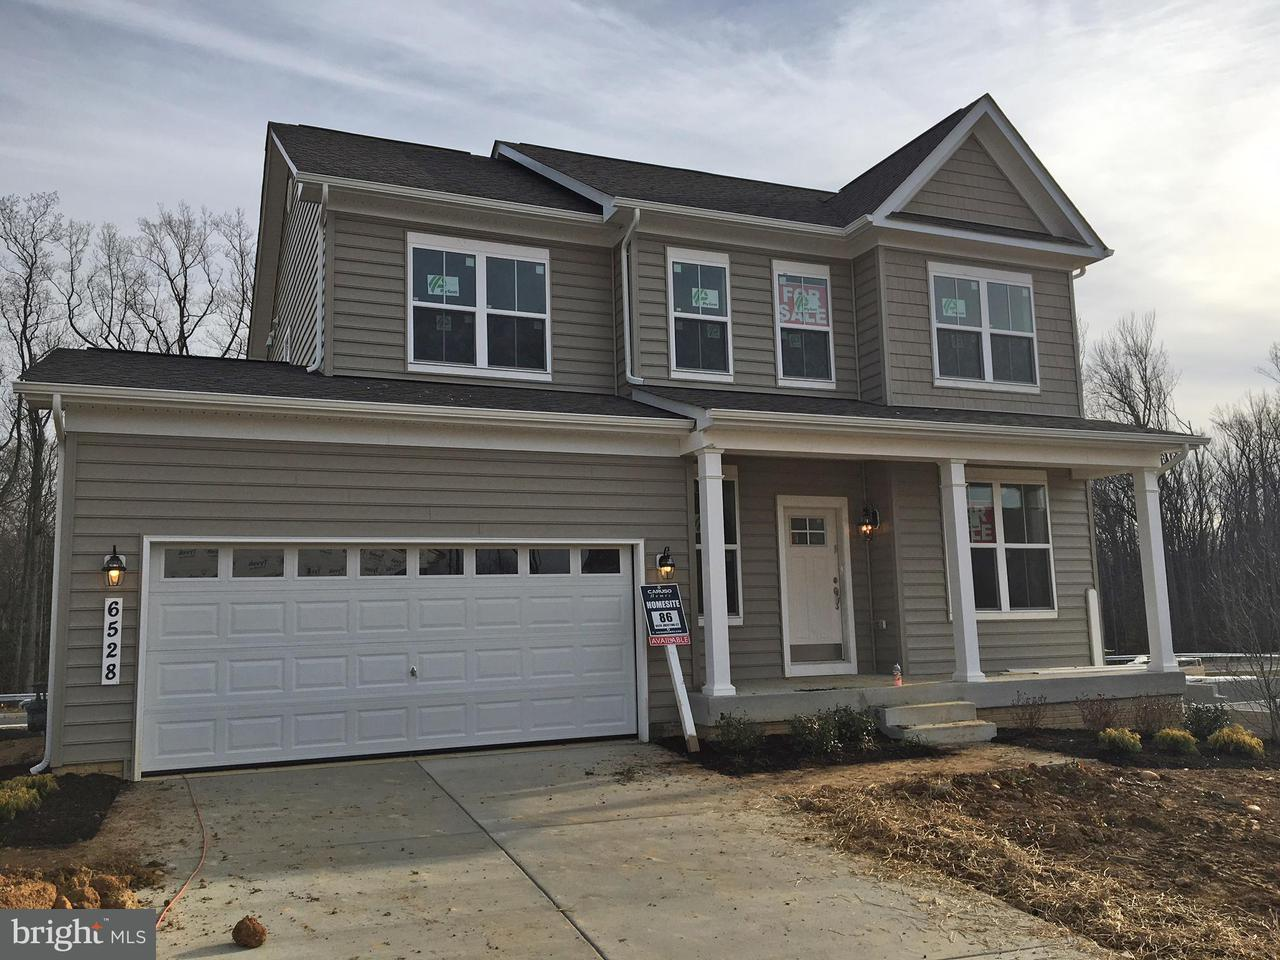 Single Family Home for Sale at 6528 JOUSTING Court 6528 JOUSTING Court Indian Head, Maryland 20640 United States